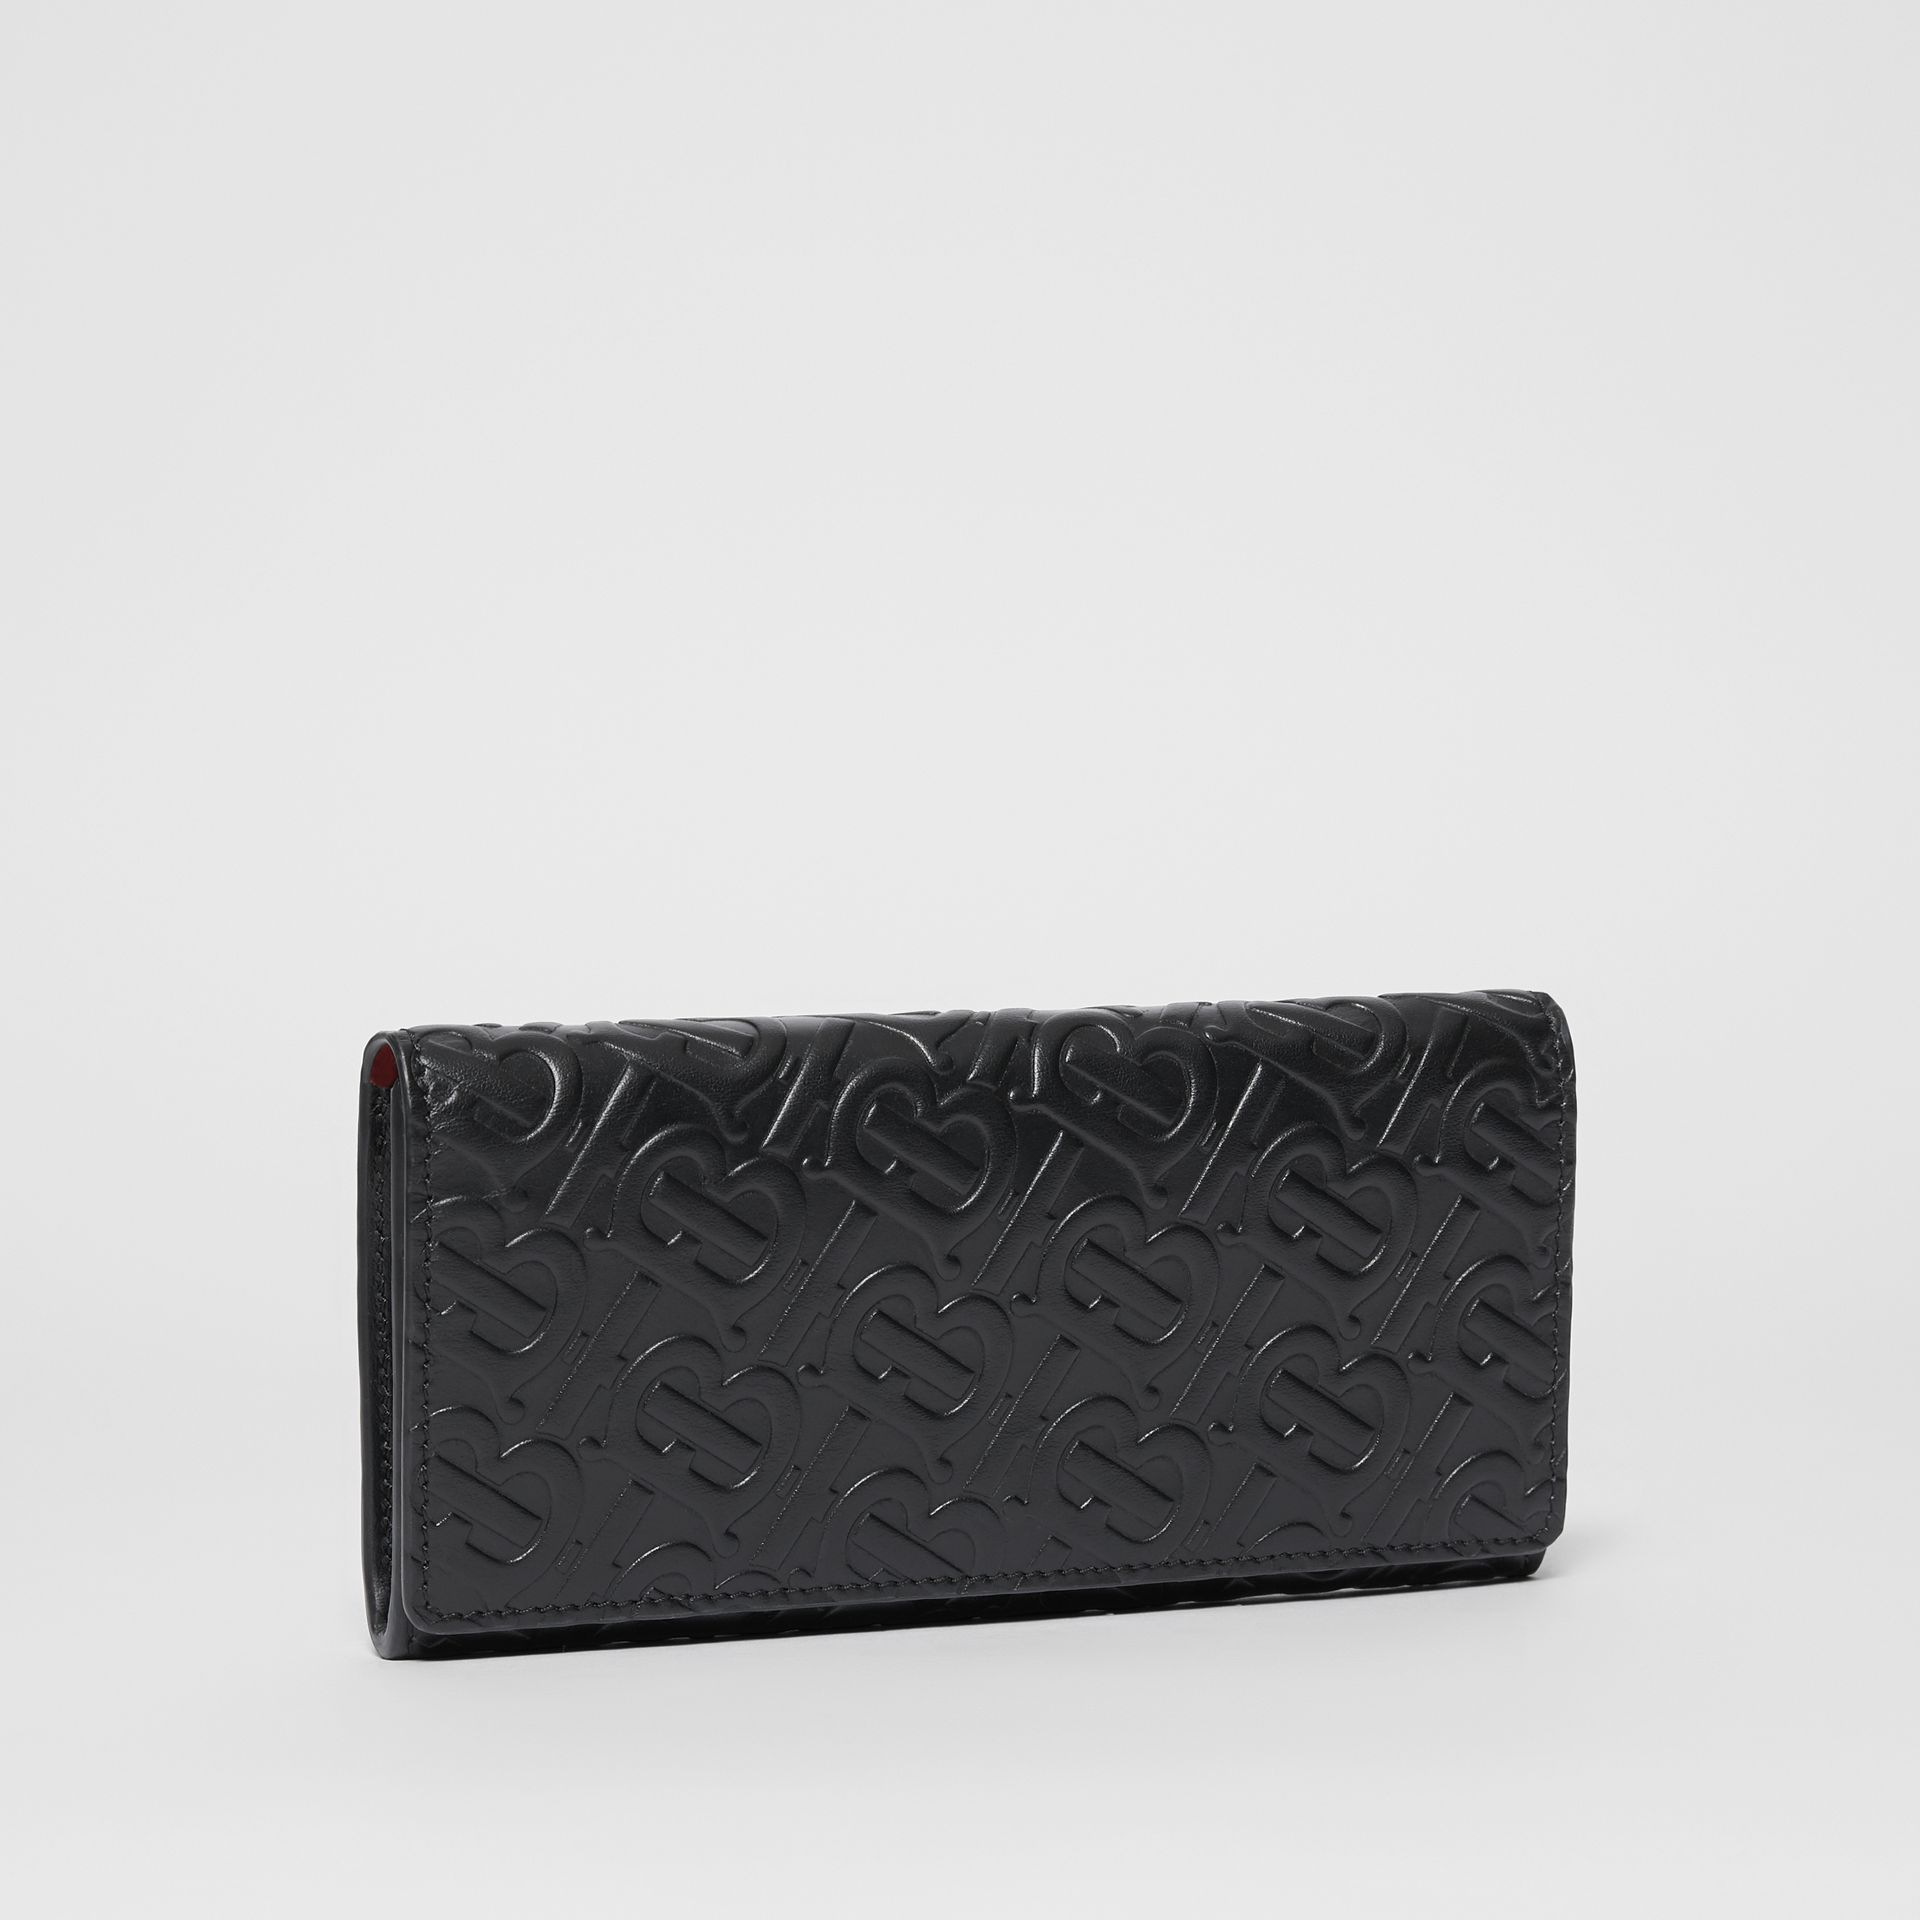 Monogram Leather Continental Wallet in Black - Women | Burberry - gallery image 4